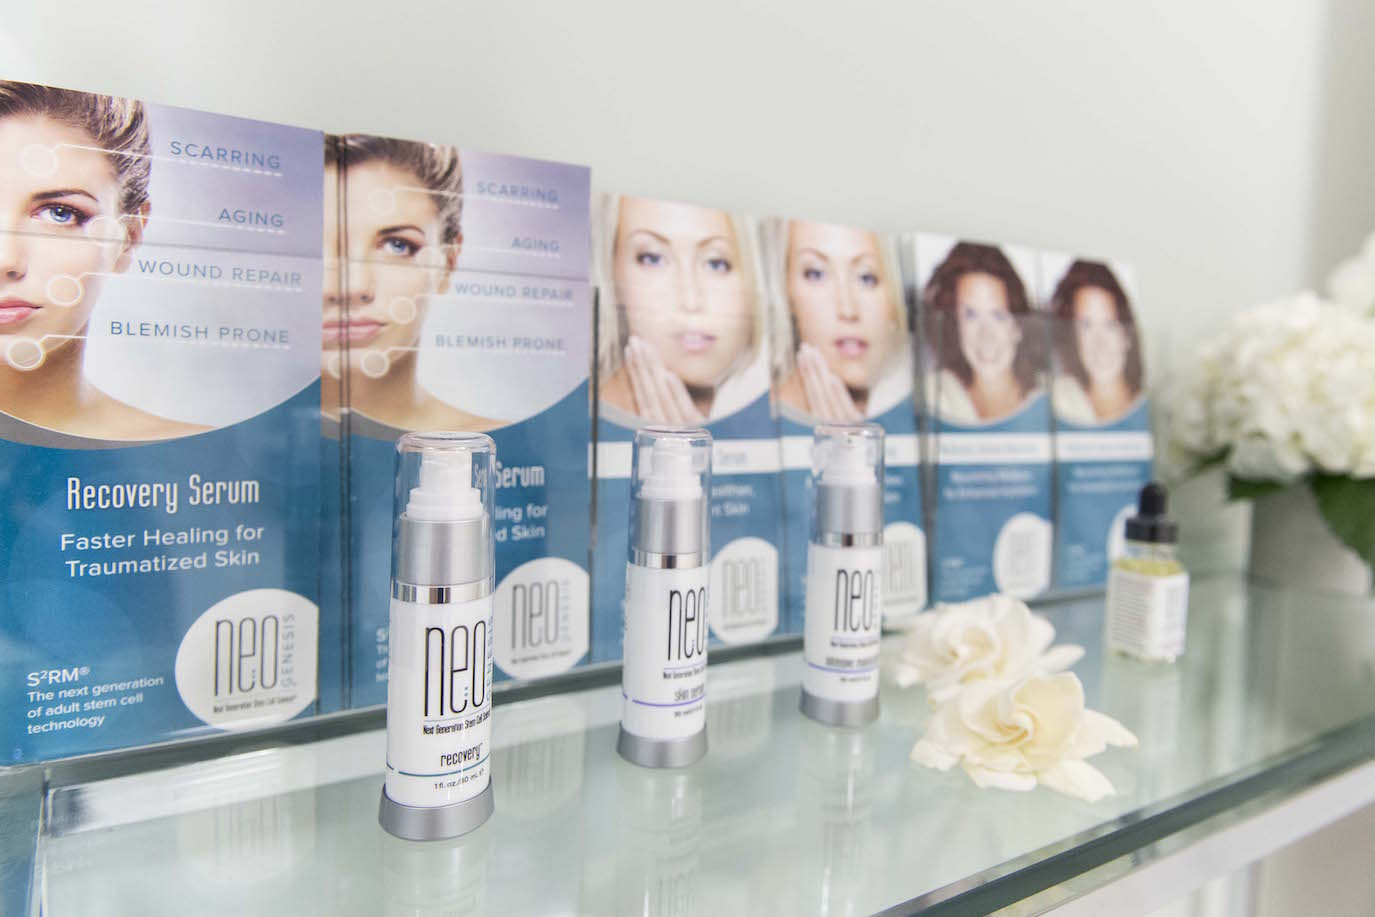 Neogenesis is one of the new lines at Serenity